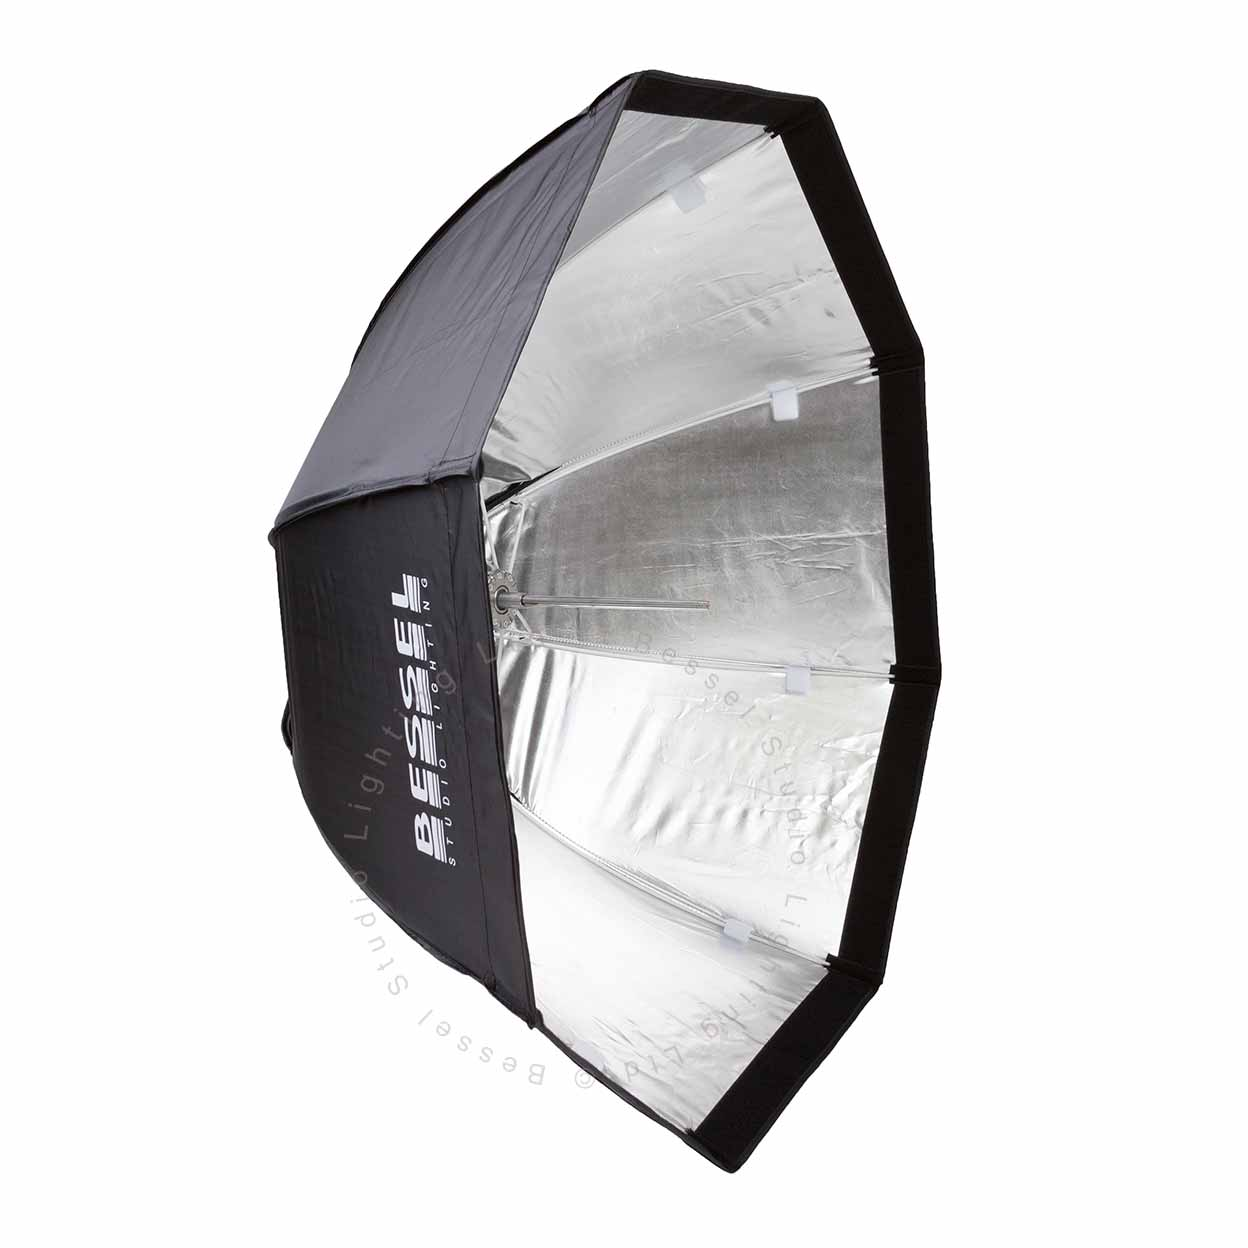 Umbrella Like A Softbox: Bessel 95cm Octabox Softbox With 2 Diffusers & 4cm Grid